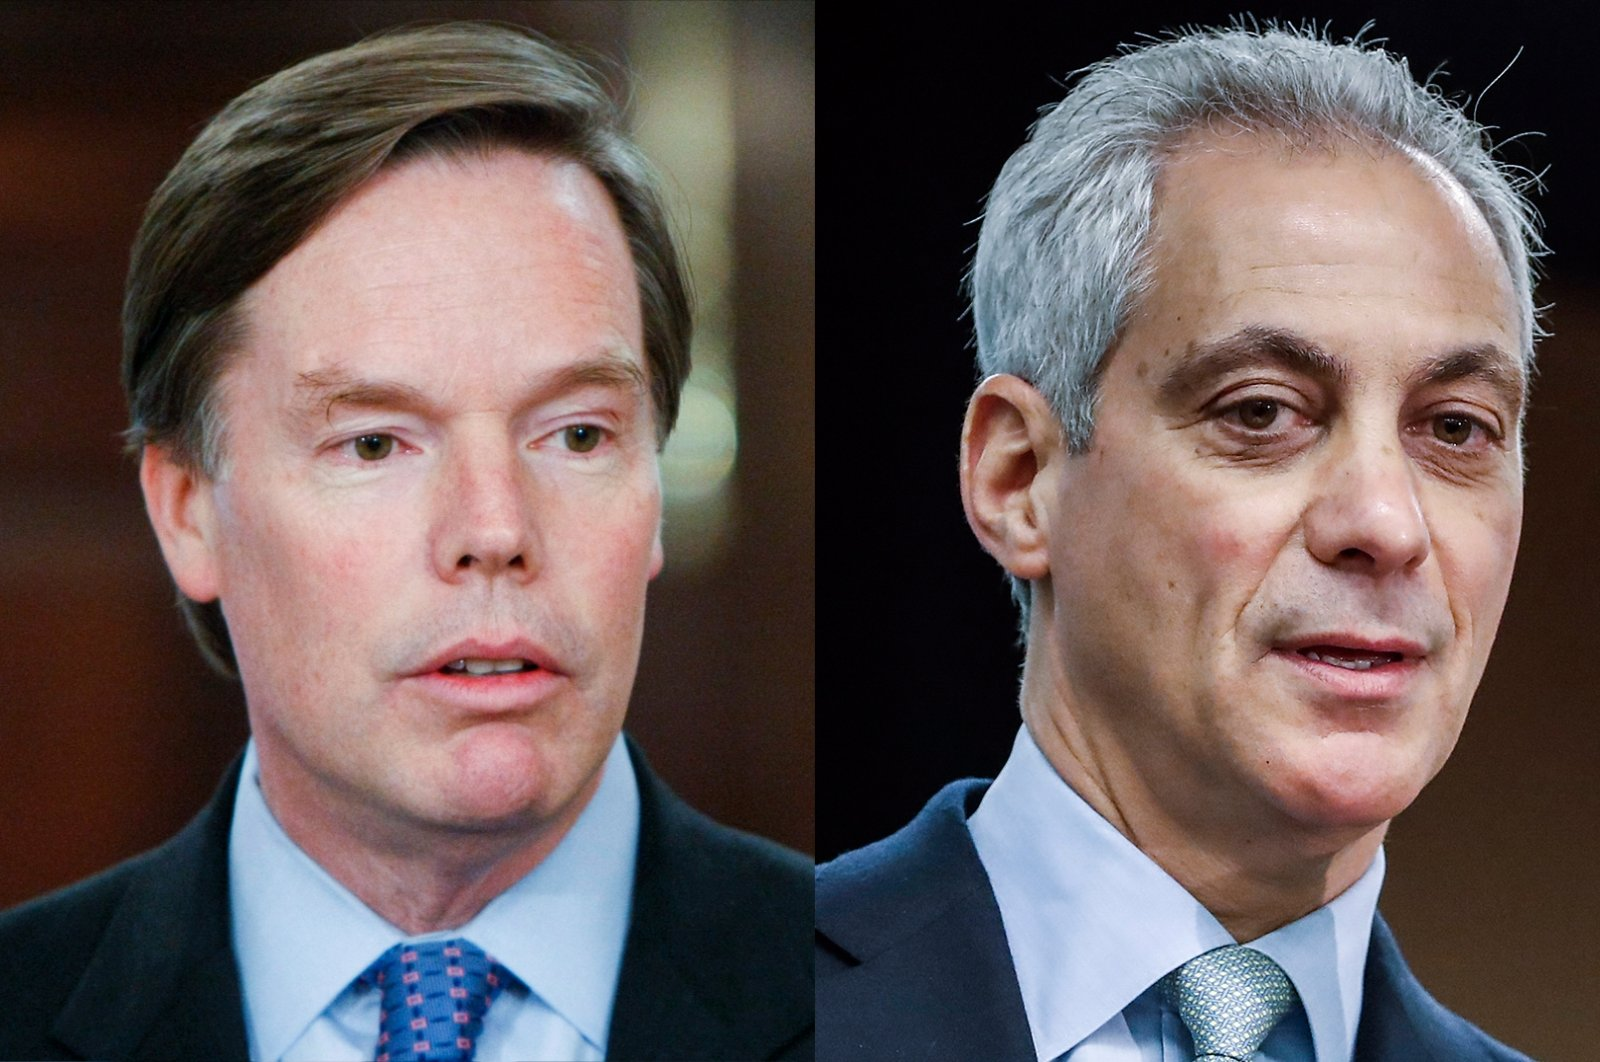 Nicholas Burns (L) announces his retirement at the State Department in Washington, U.S., Jan. 18, 2008. Rahm Emanuel (R), then mayor of Chicago, speaks at a news conference following the signing of the Chicago Climate Charter at the North American Climate Summit at the Sheraton Hotel in Chicago, Illinois, U.S., Dec. 5, 2017. (Photos by AP and EPA)